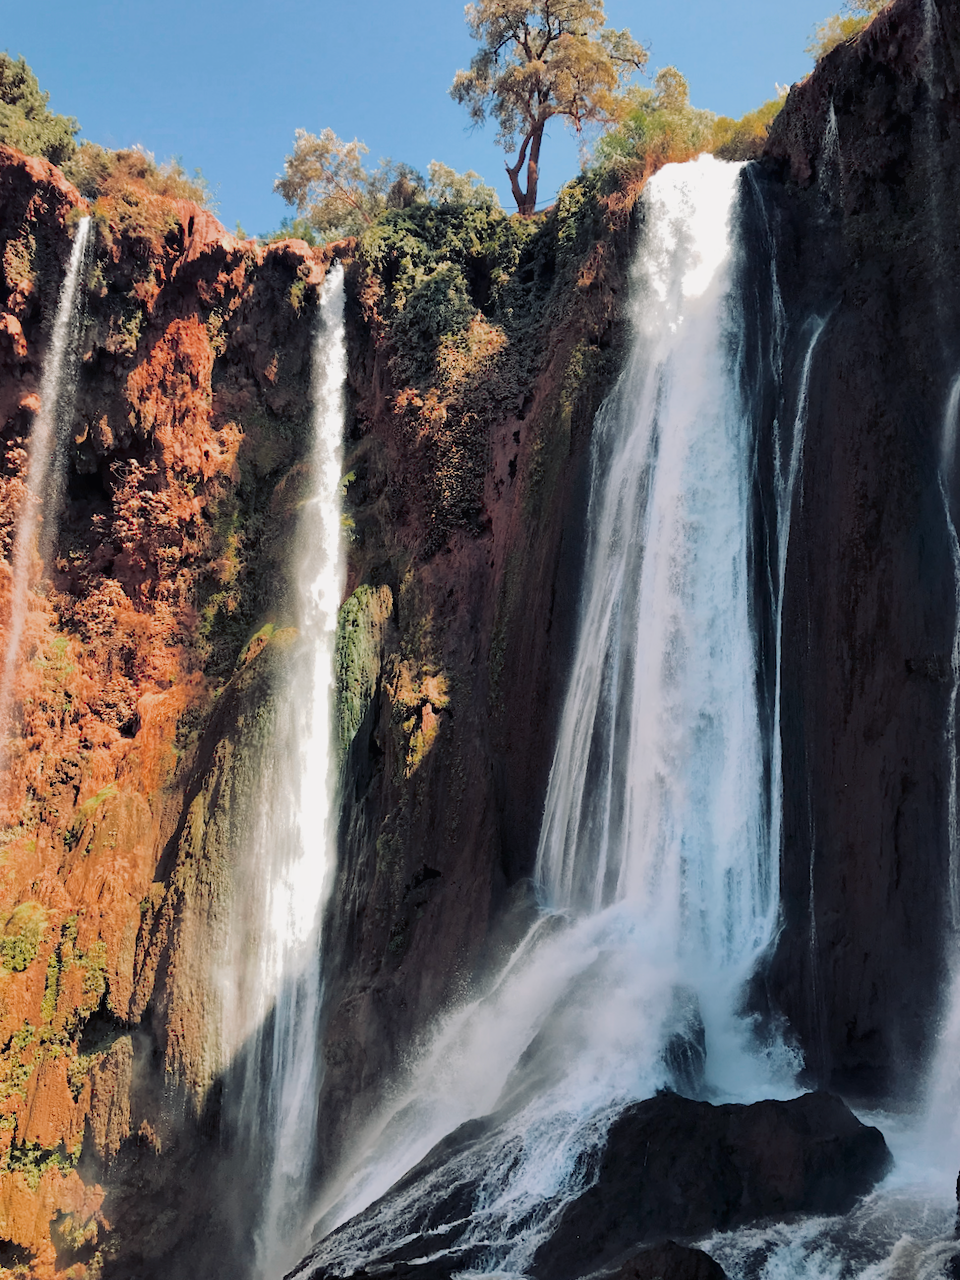 Close up image of the top of the cascade at Ouzoud falls